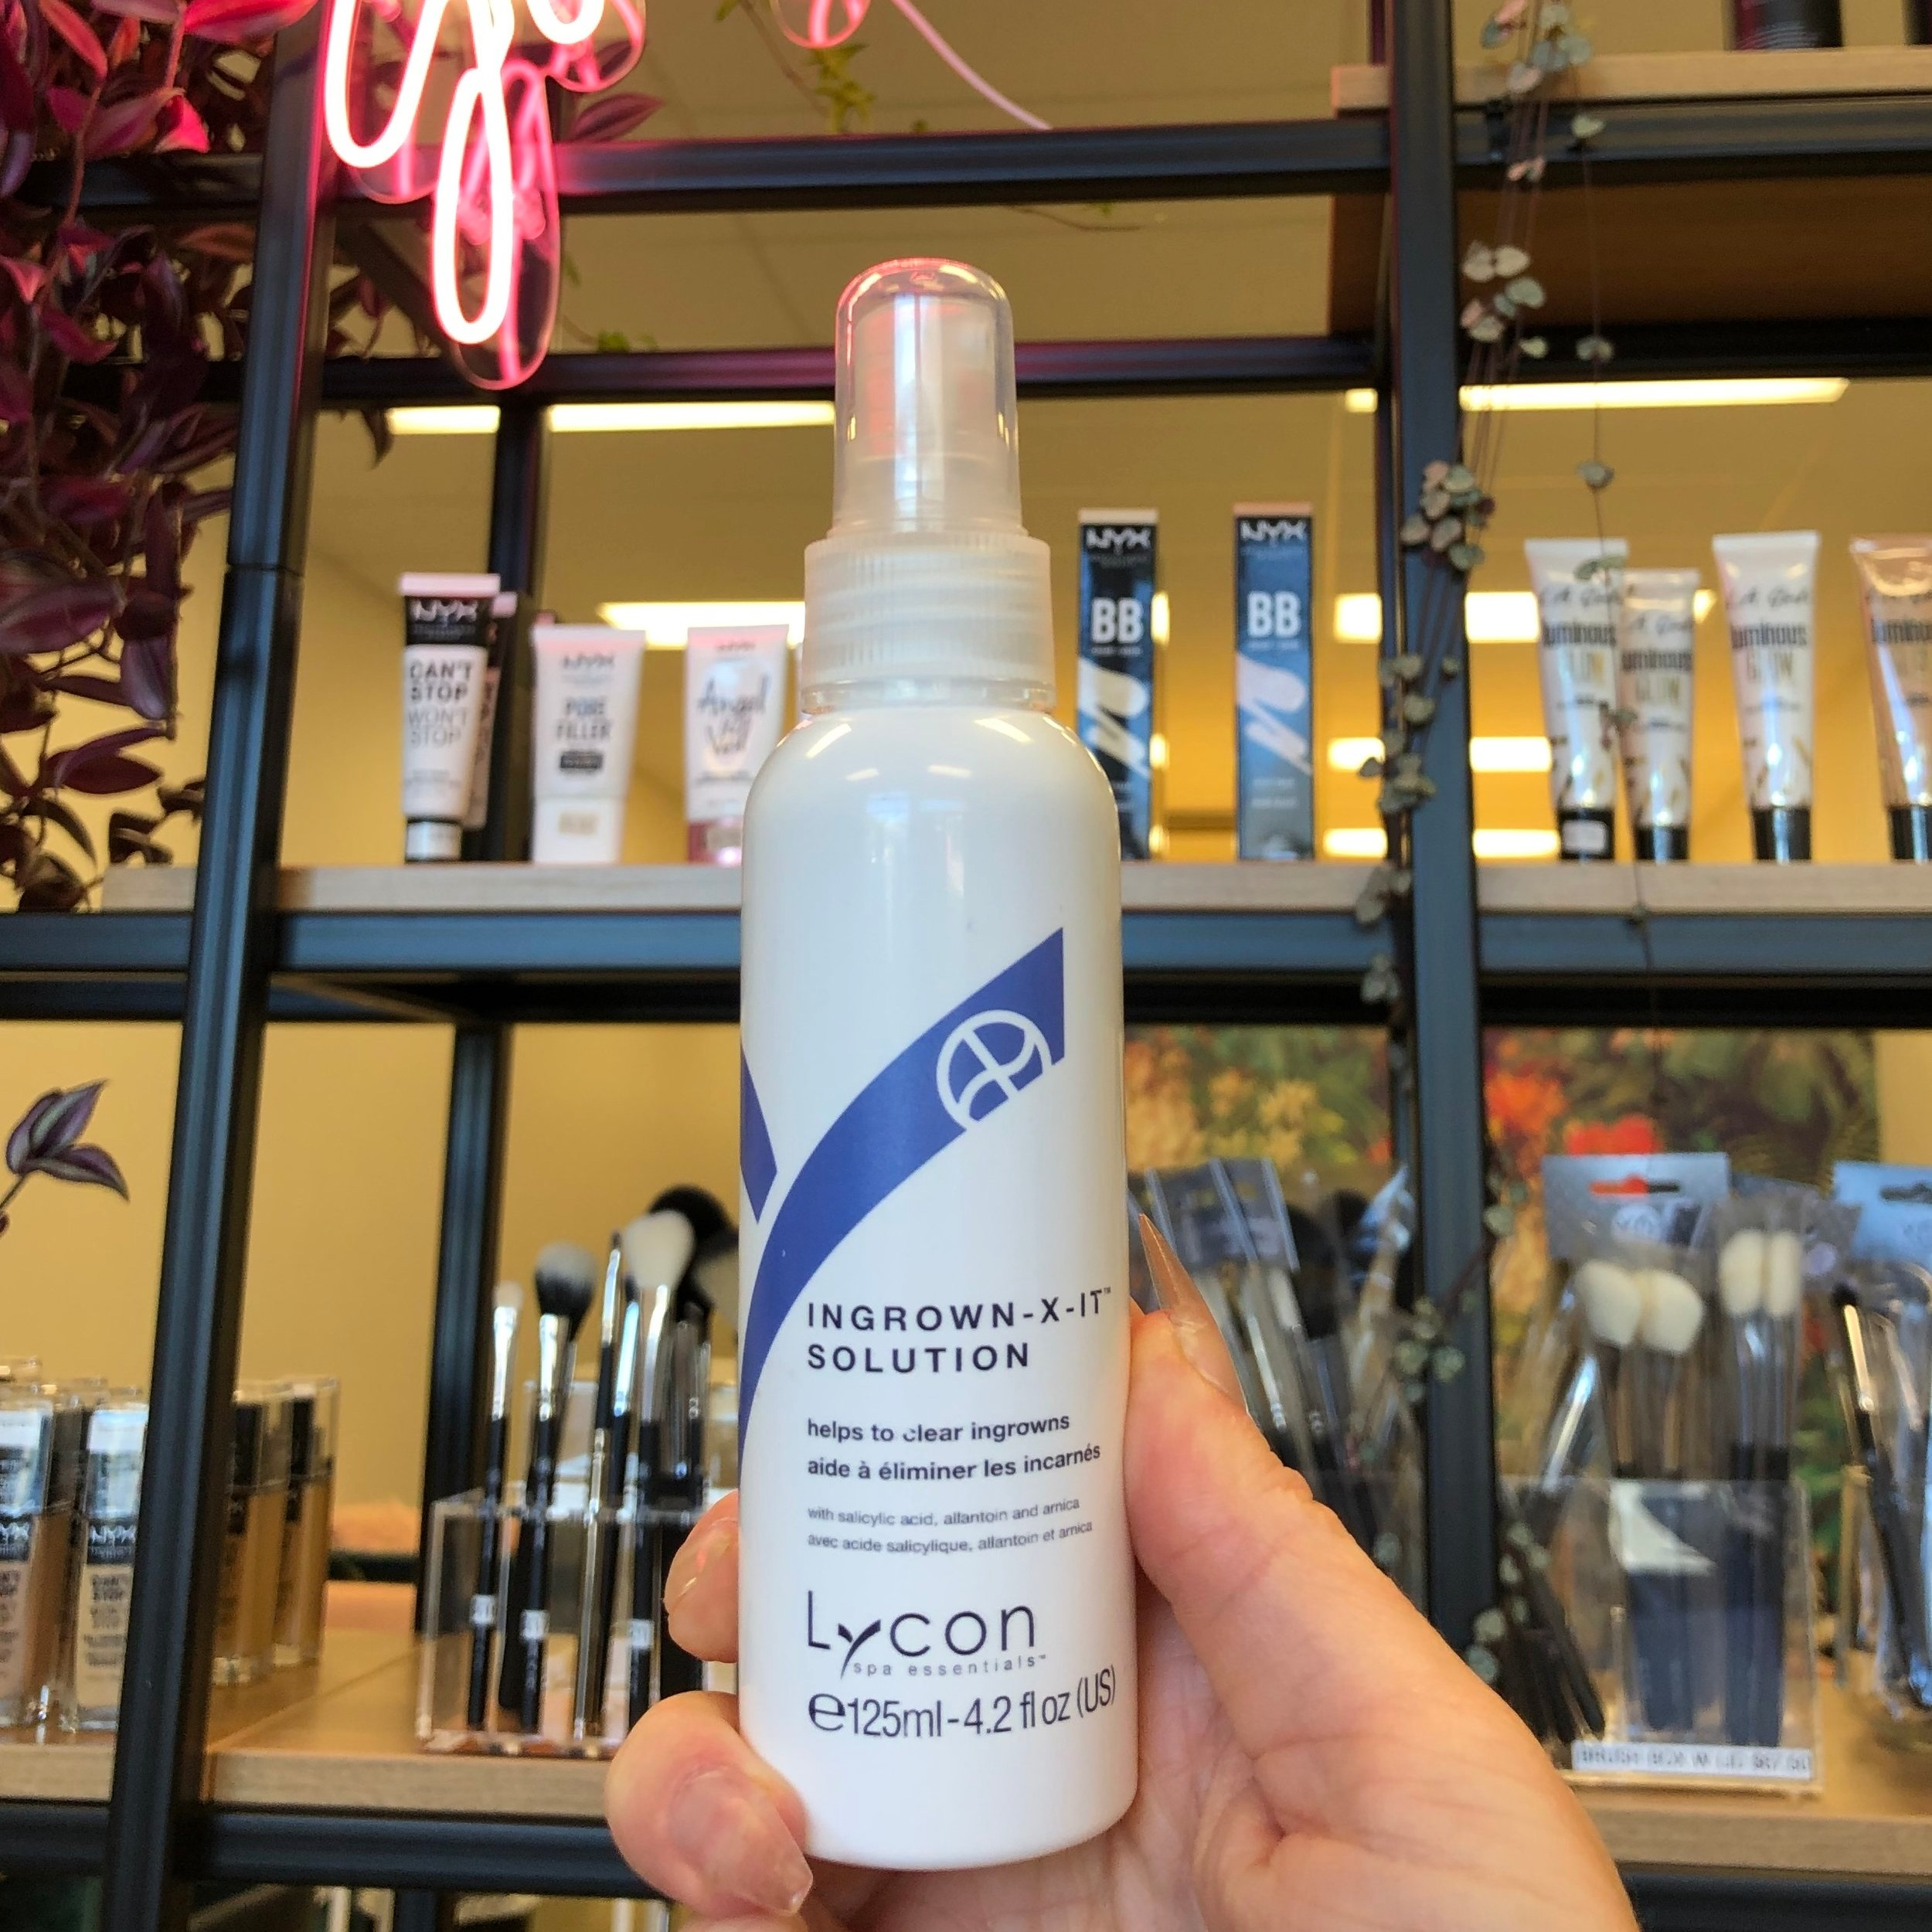 Got Ingrown Hairs? - This incredible product by LYCON (THE WAX BRAND WE USE) IS A GAME CHANGER WHEN IT COMES TO CLEARING INGROWN HAIRS. THIS PRODUCT IS AVAILABLE IN SALON IS ONLY $32.50